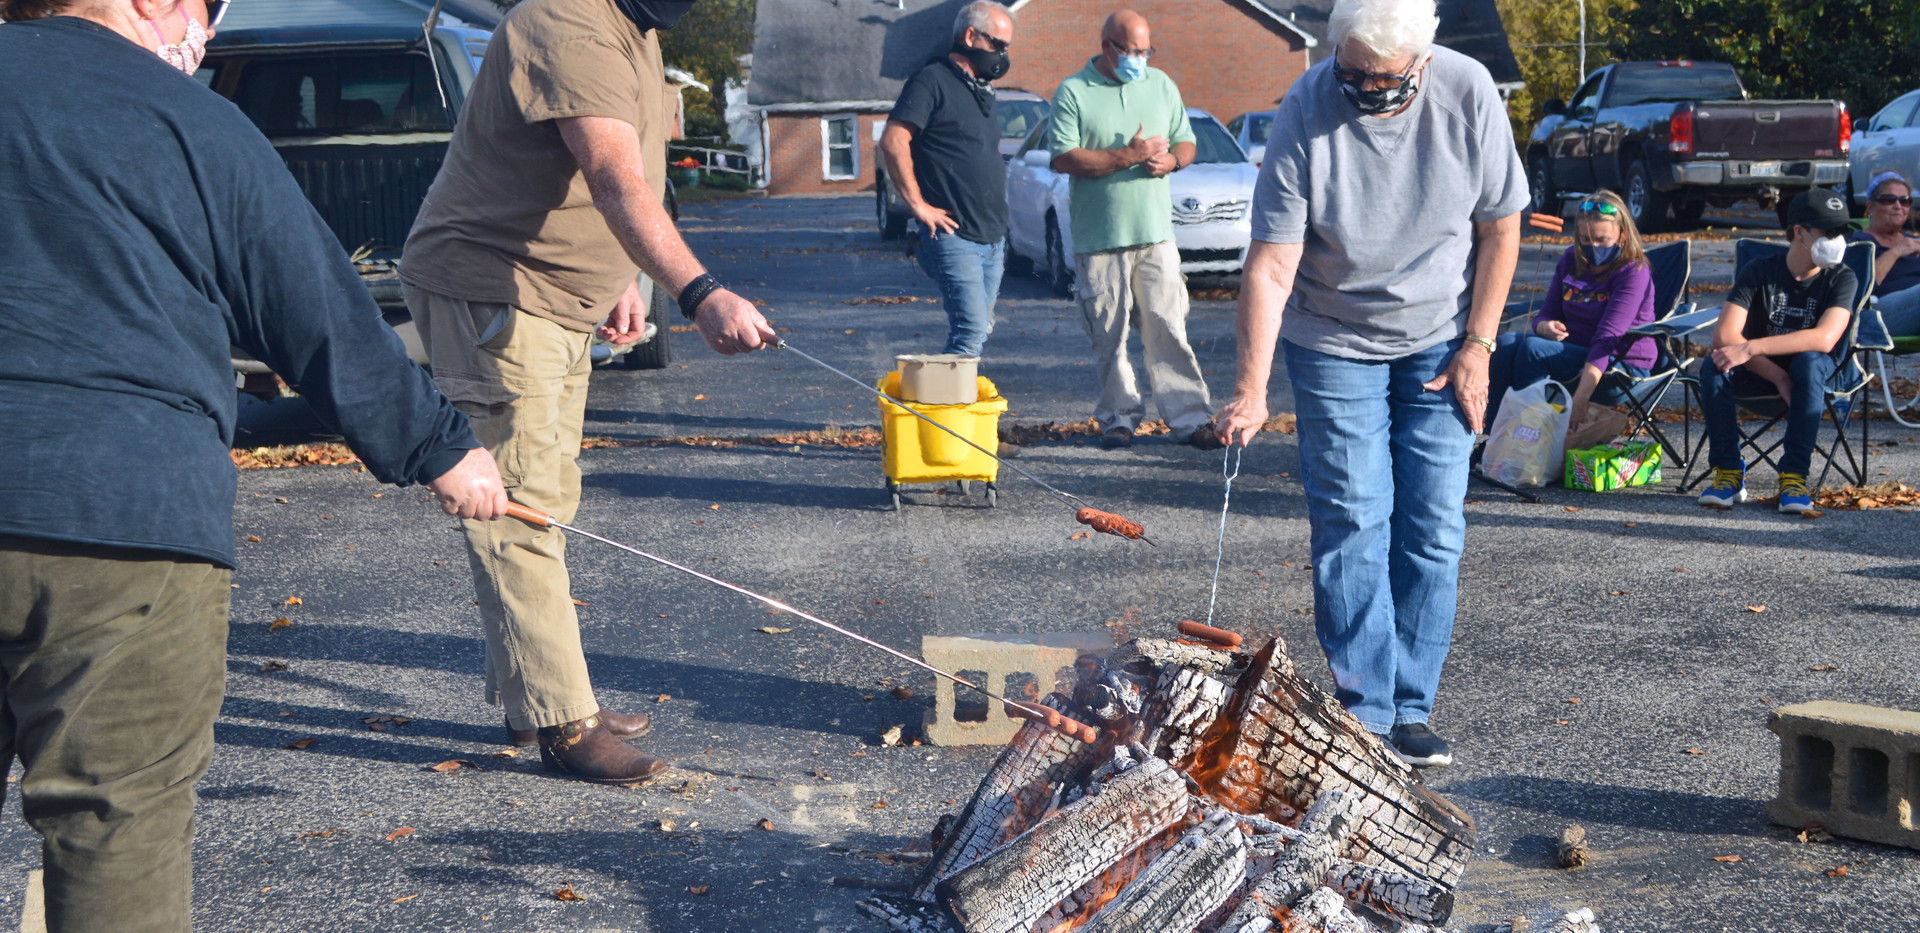 2020 (10) OCT 14 Wed Bonfire Calvary 019